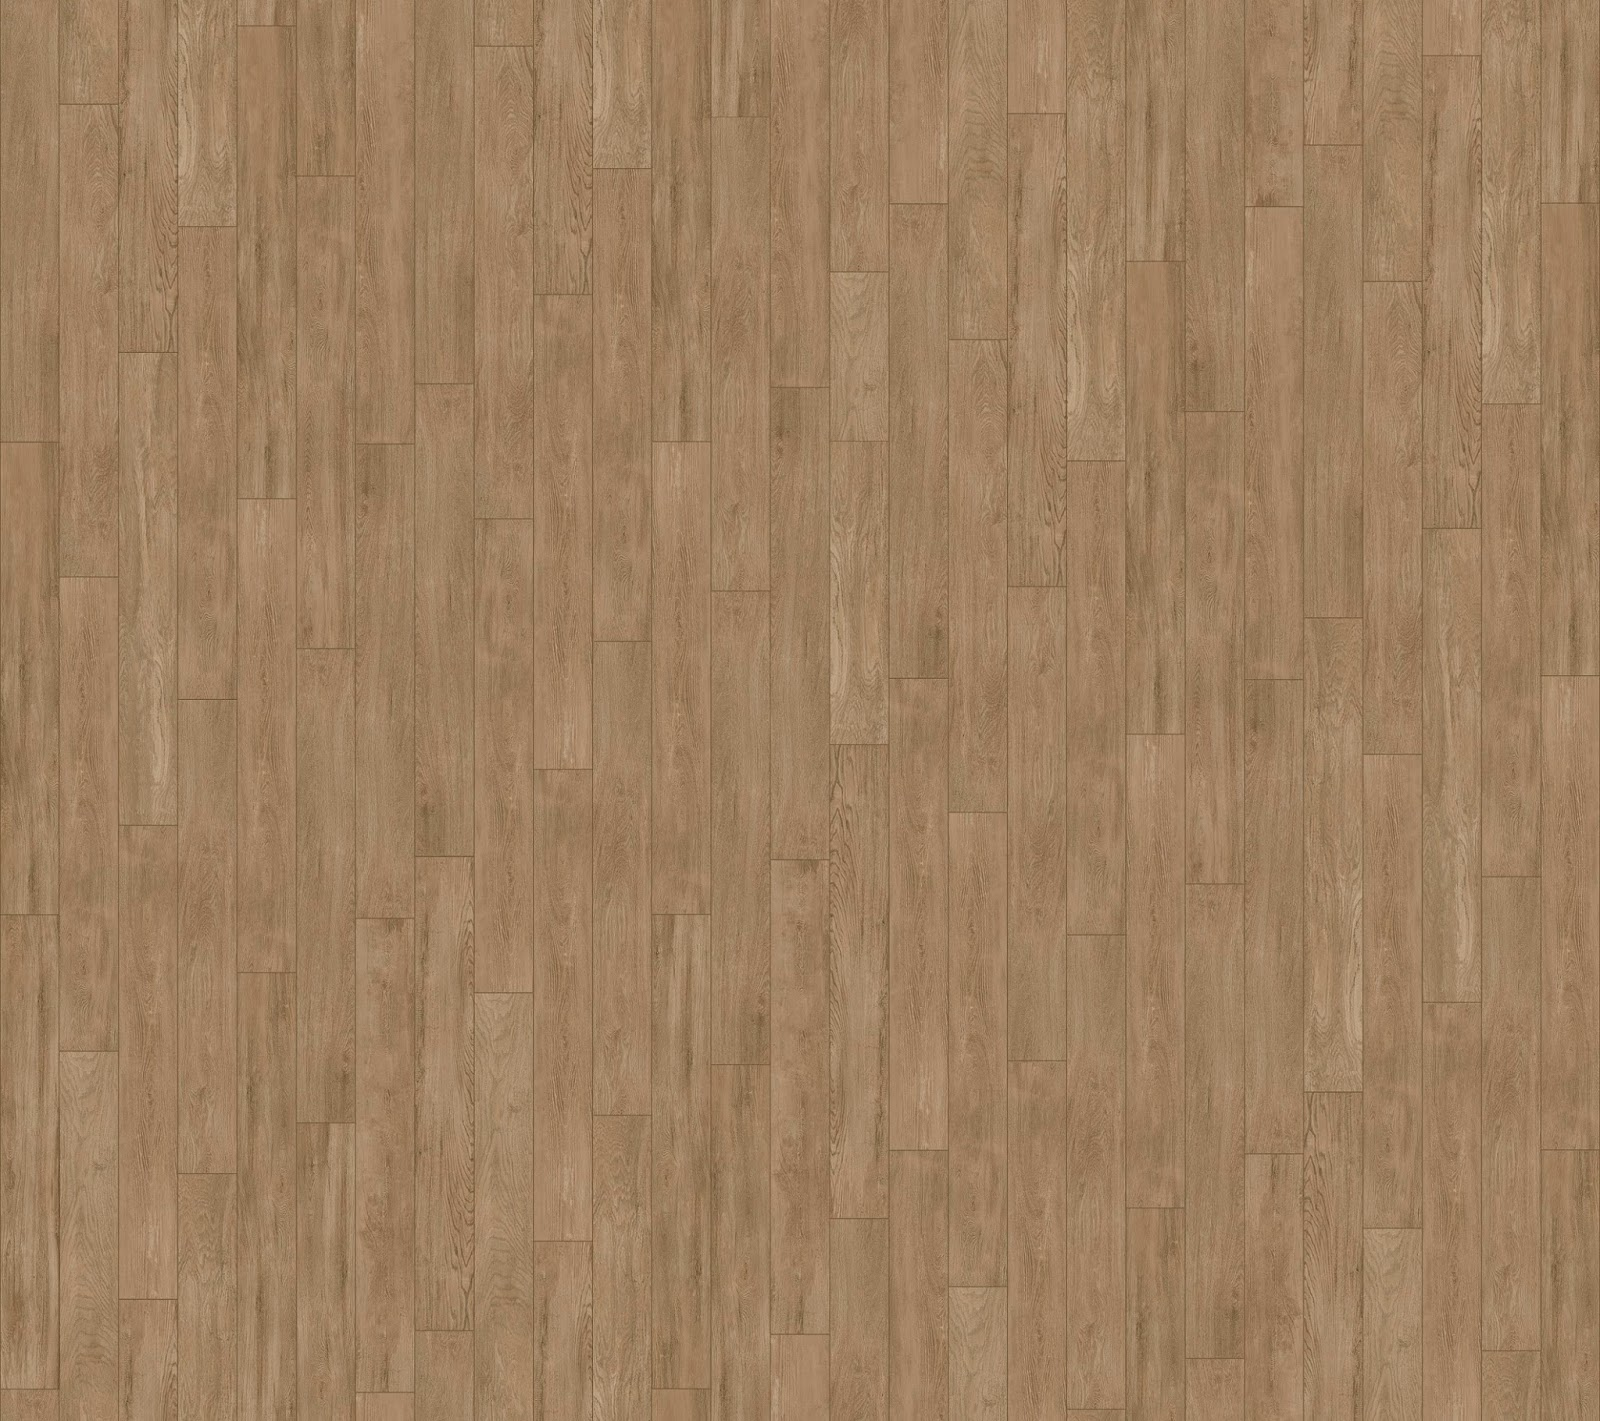 TEXTURE SEAMLESS  PARQUET  Vray Sketchup  TUT